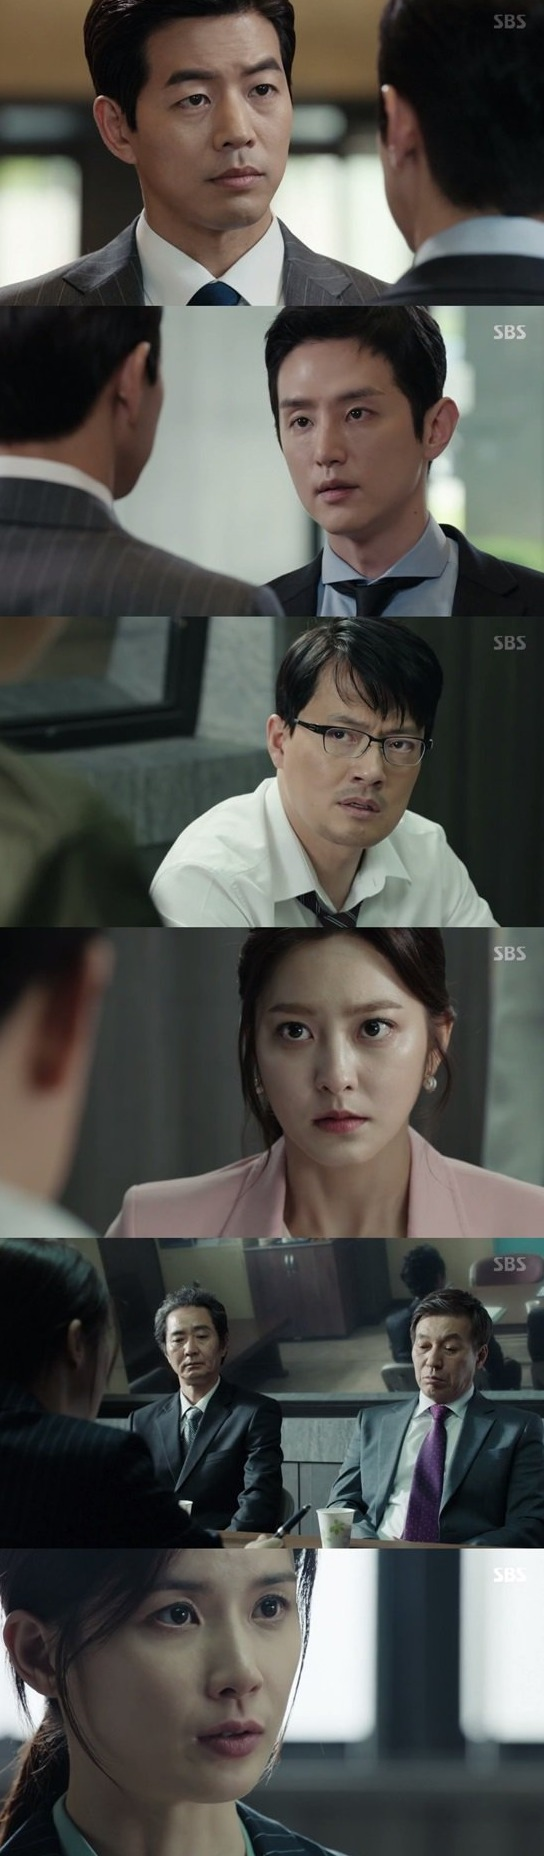 [Spoiler] Added episode 13 captures for the Korean drama 'Whisper'